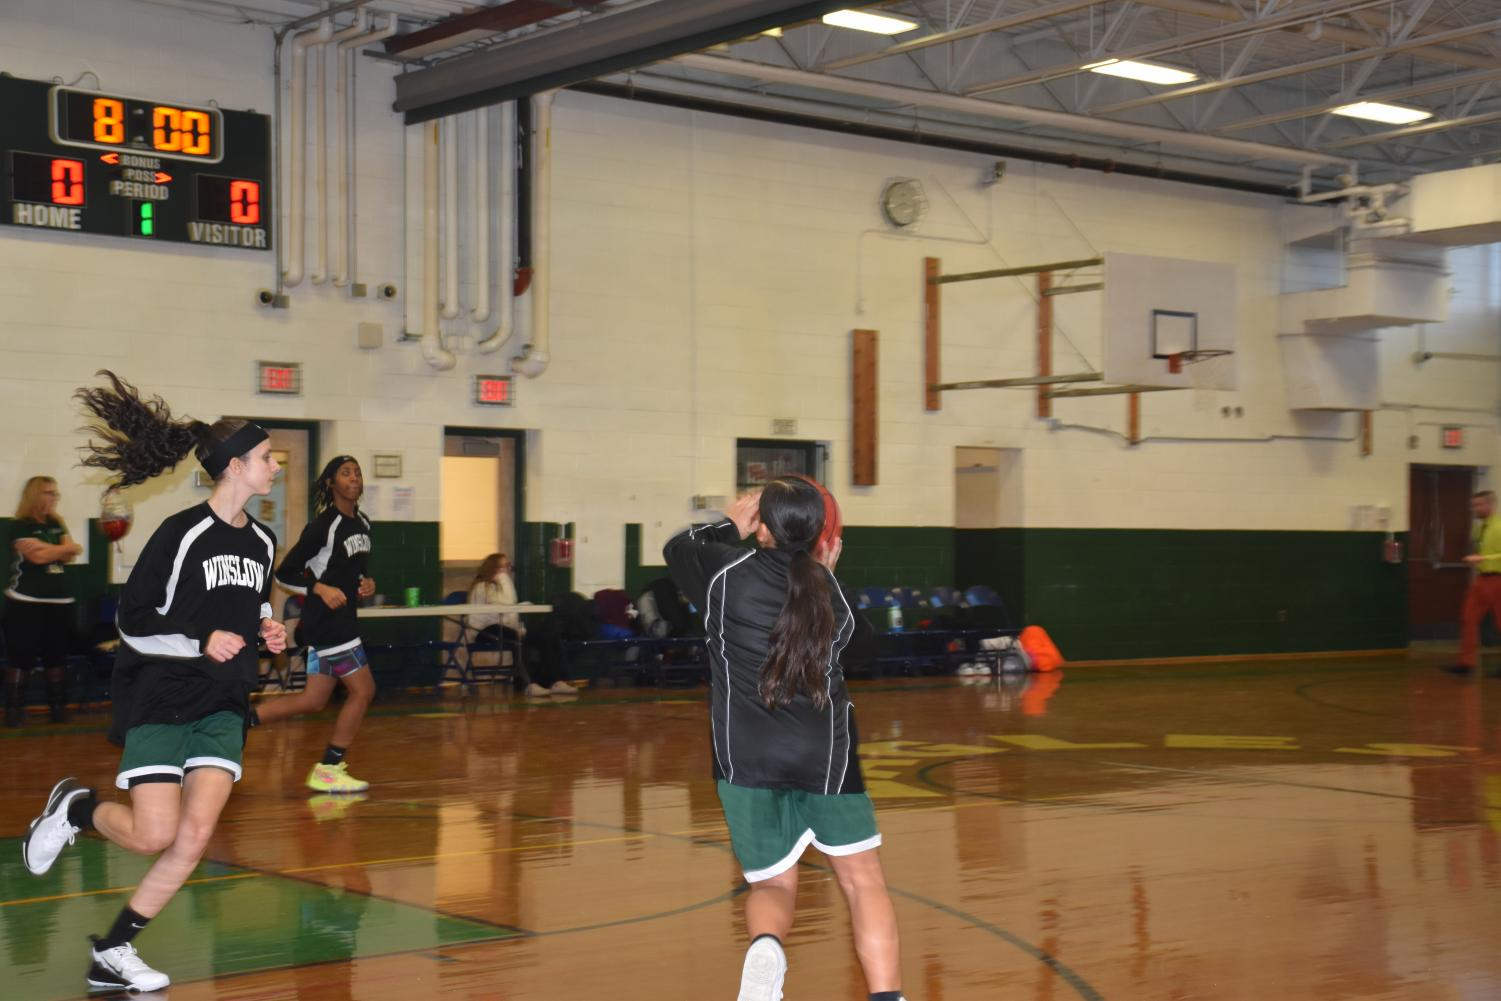 Girls warm up on December 19 before their first game vs. Hammonton.